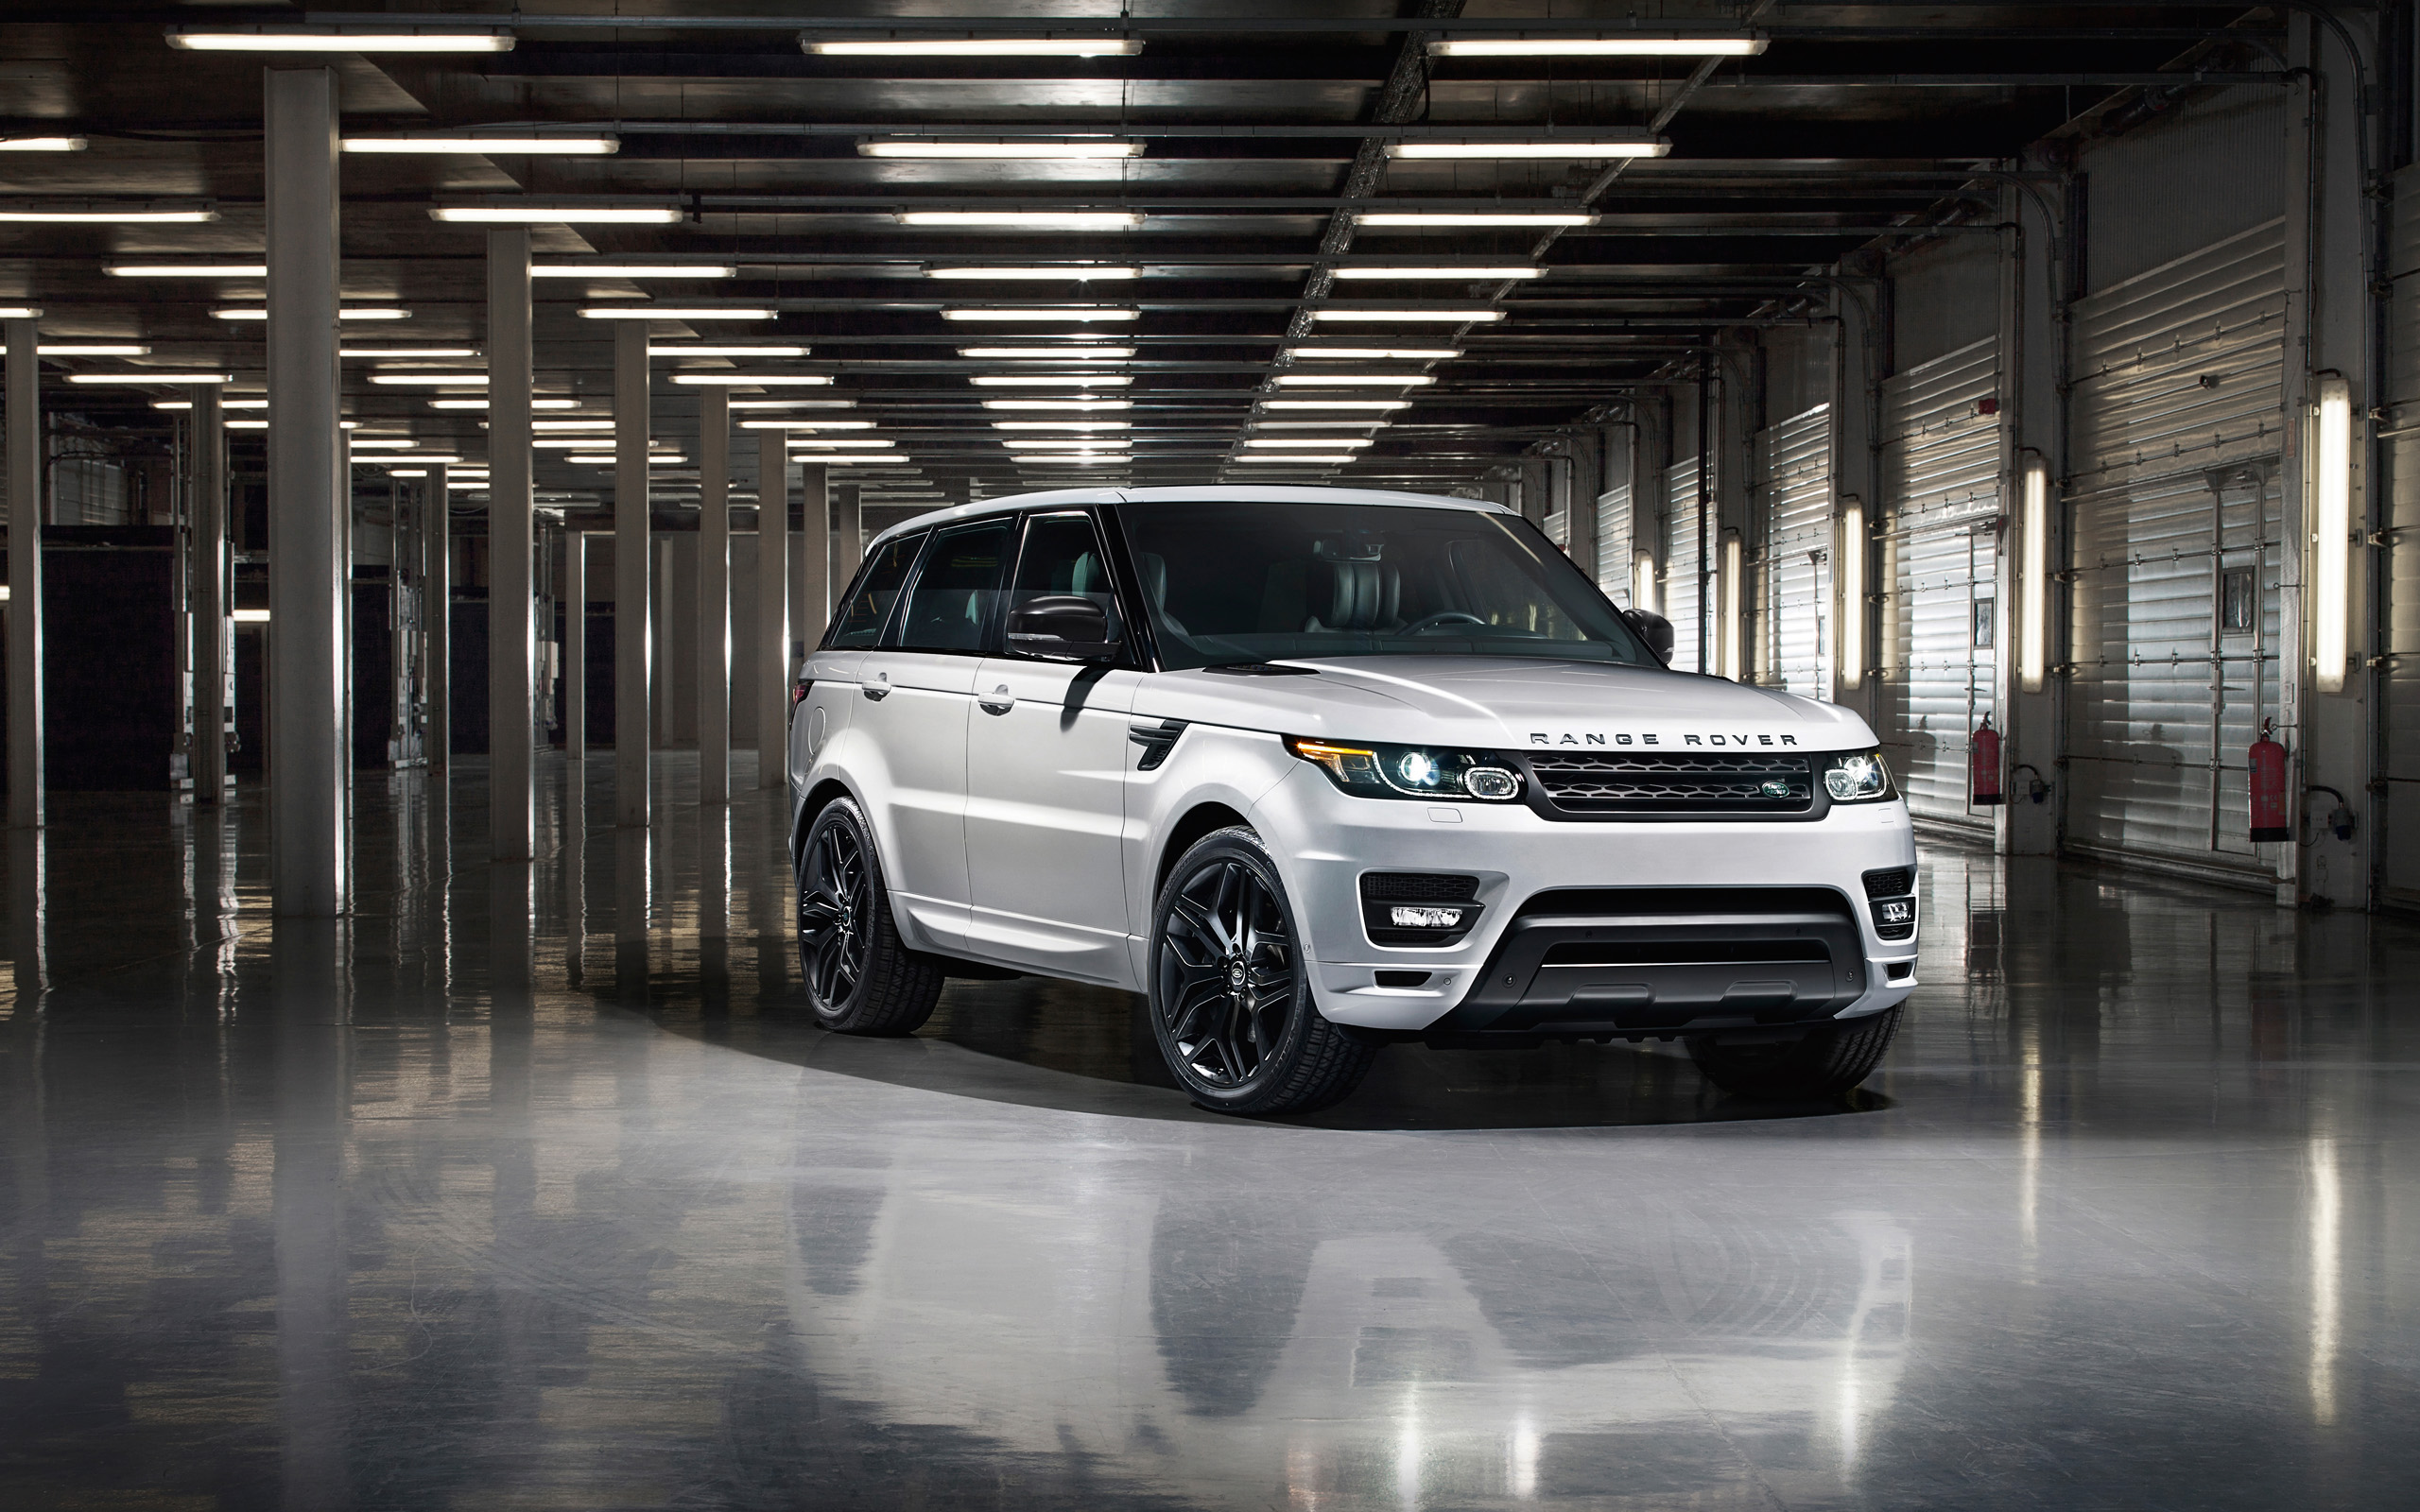 Range Rover Sport Iphone Wallpaper: 2014 Land Rover Range Rover Sport Stealth Pack Wallpaper